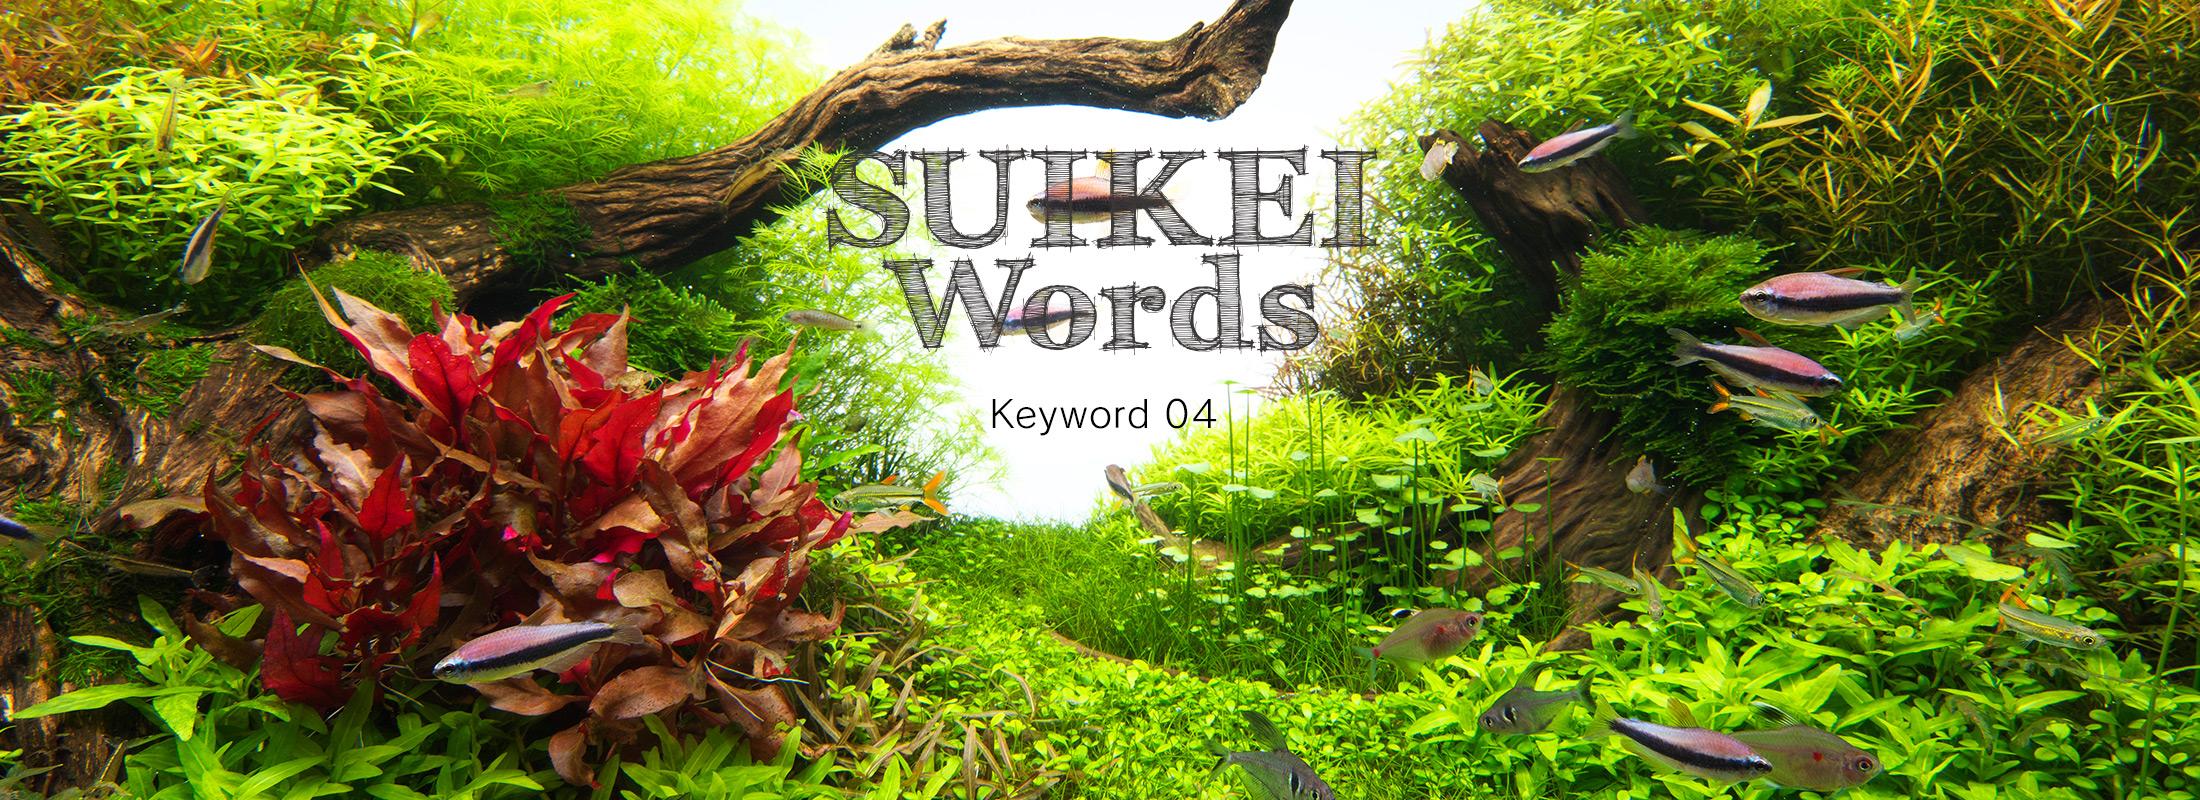 SUIKEI WORDS Keyword 04 'Planting'